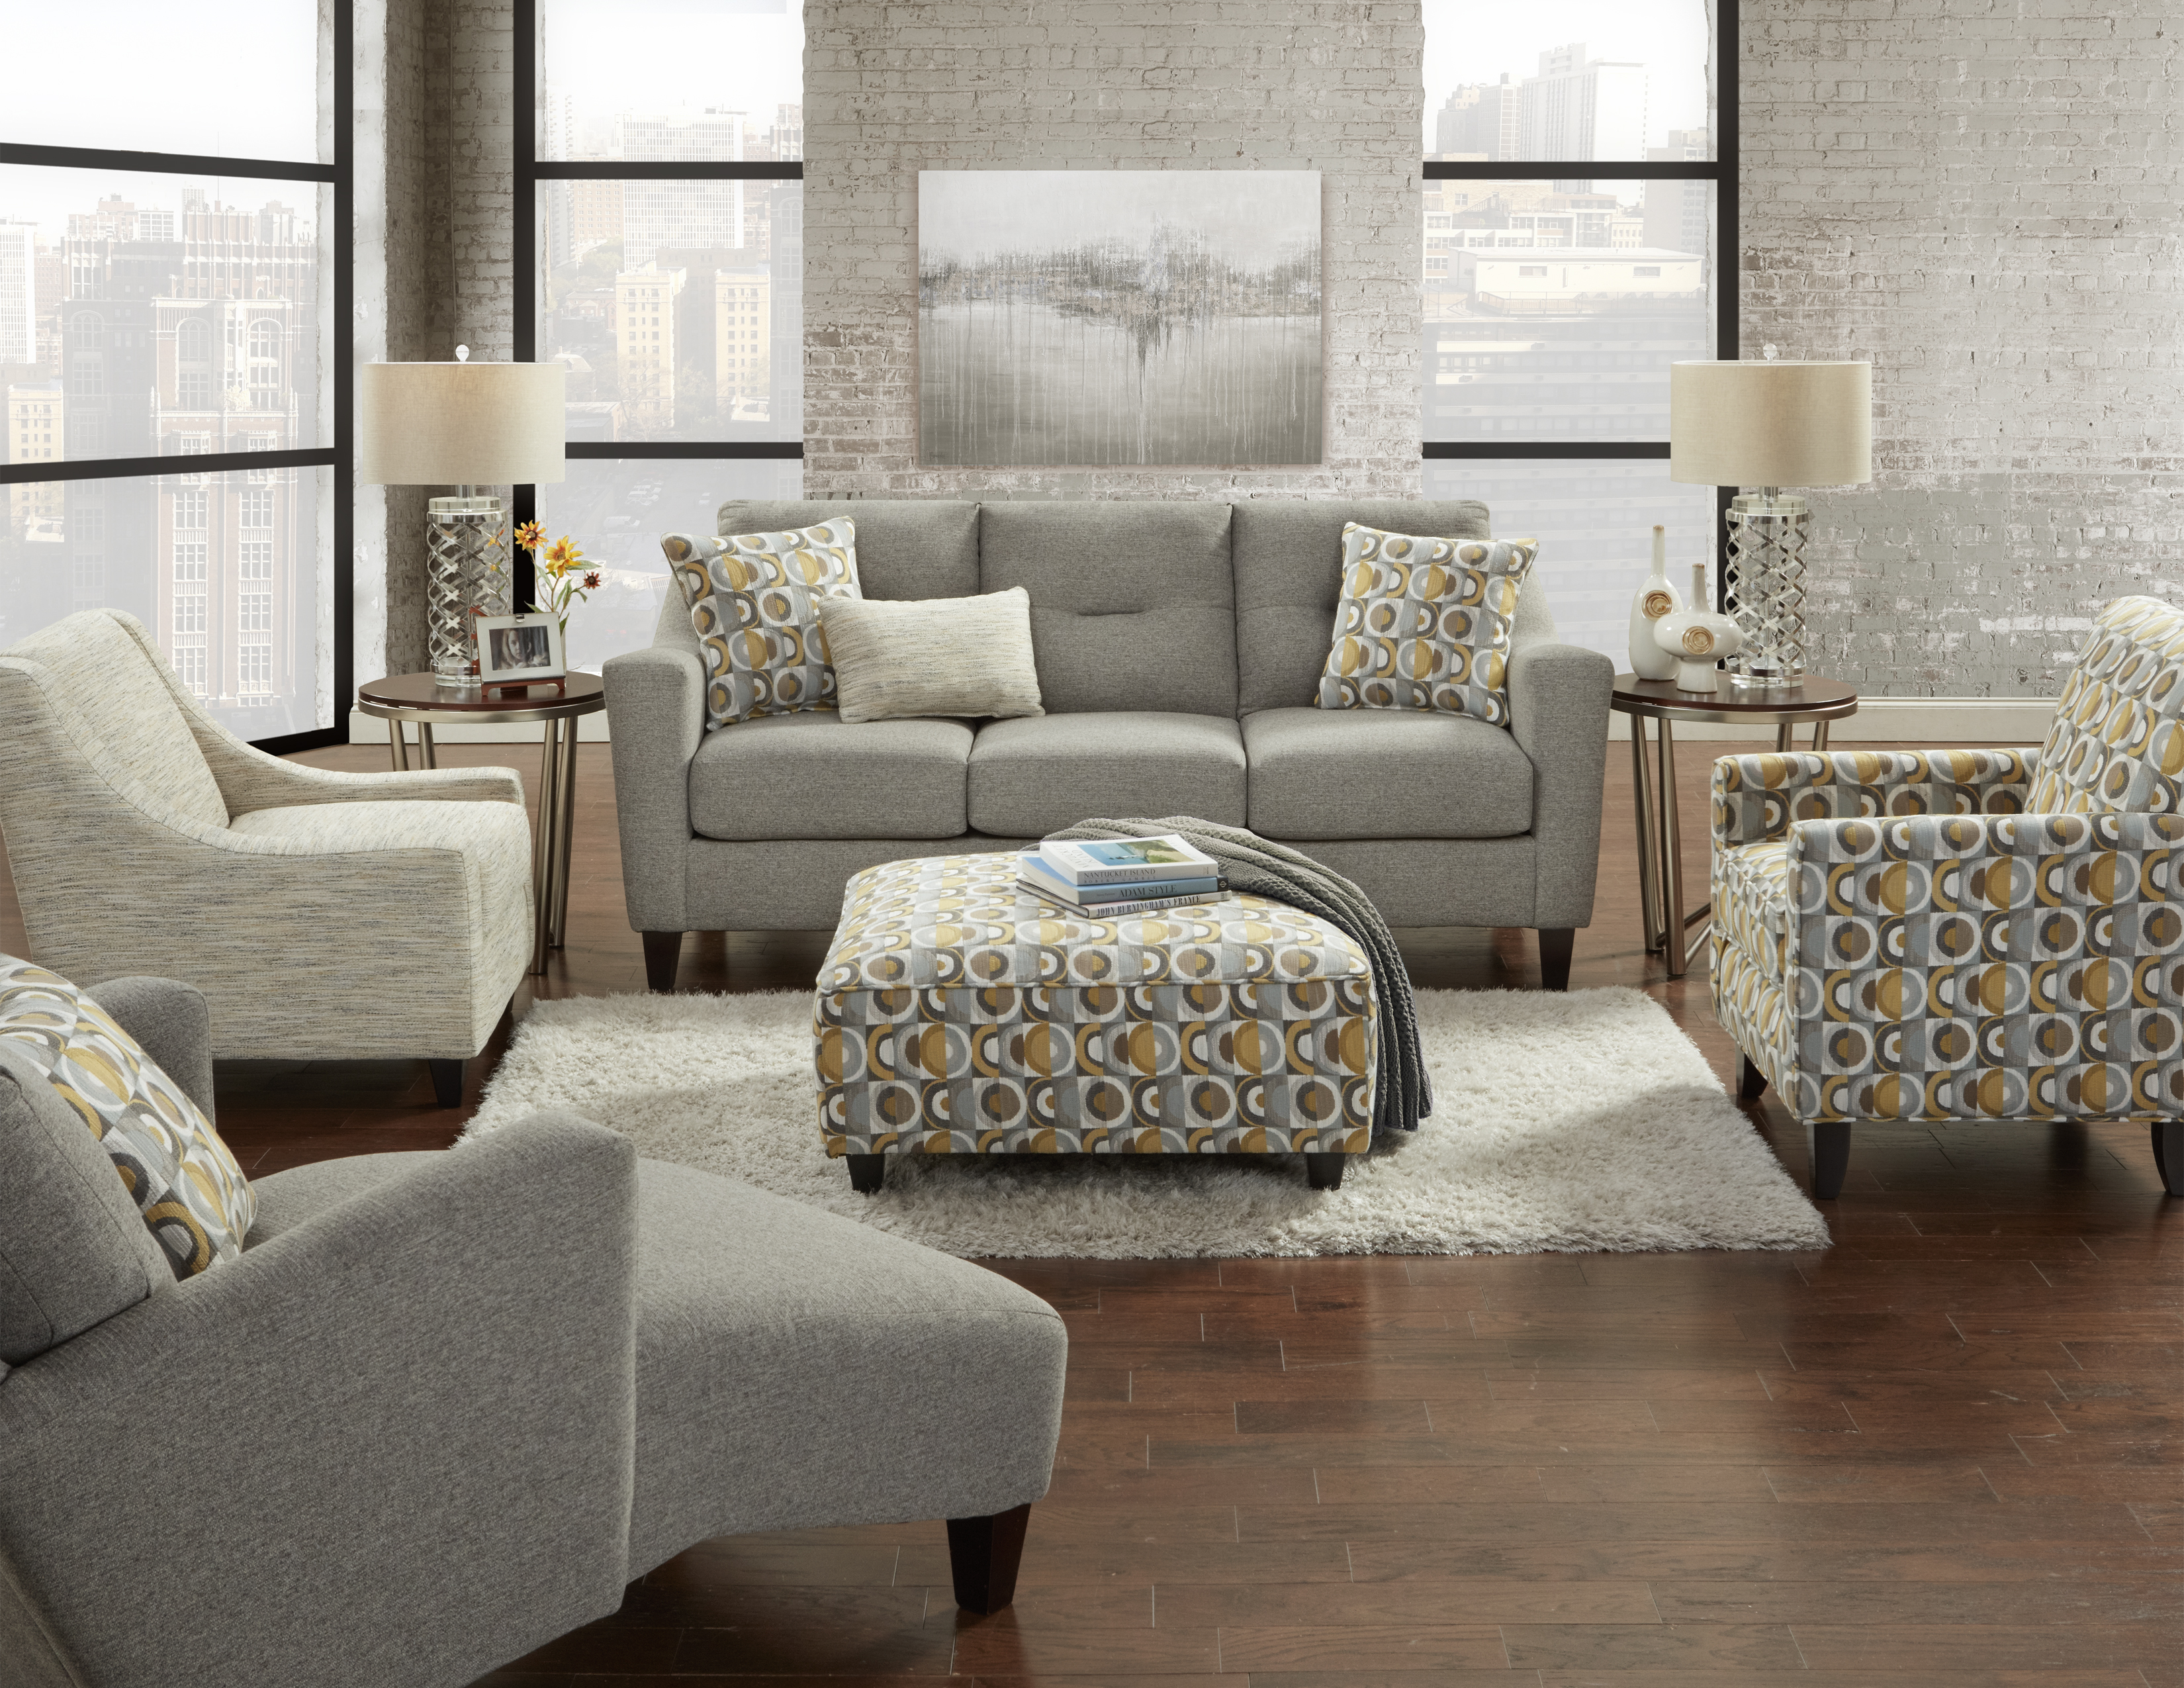 Fusion Furniture Dillist Mica room collection